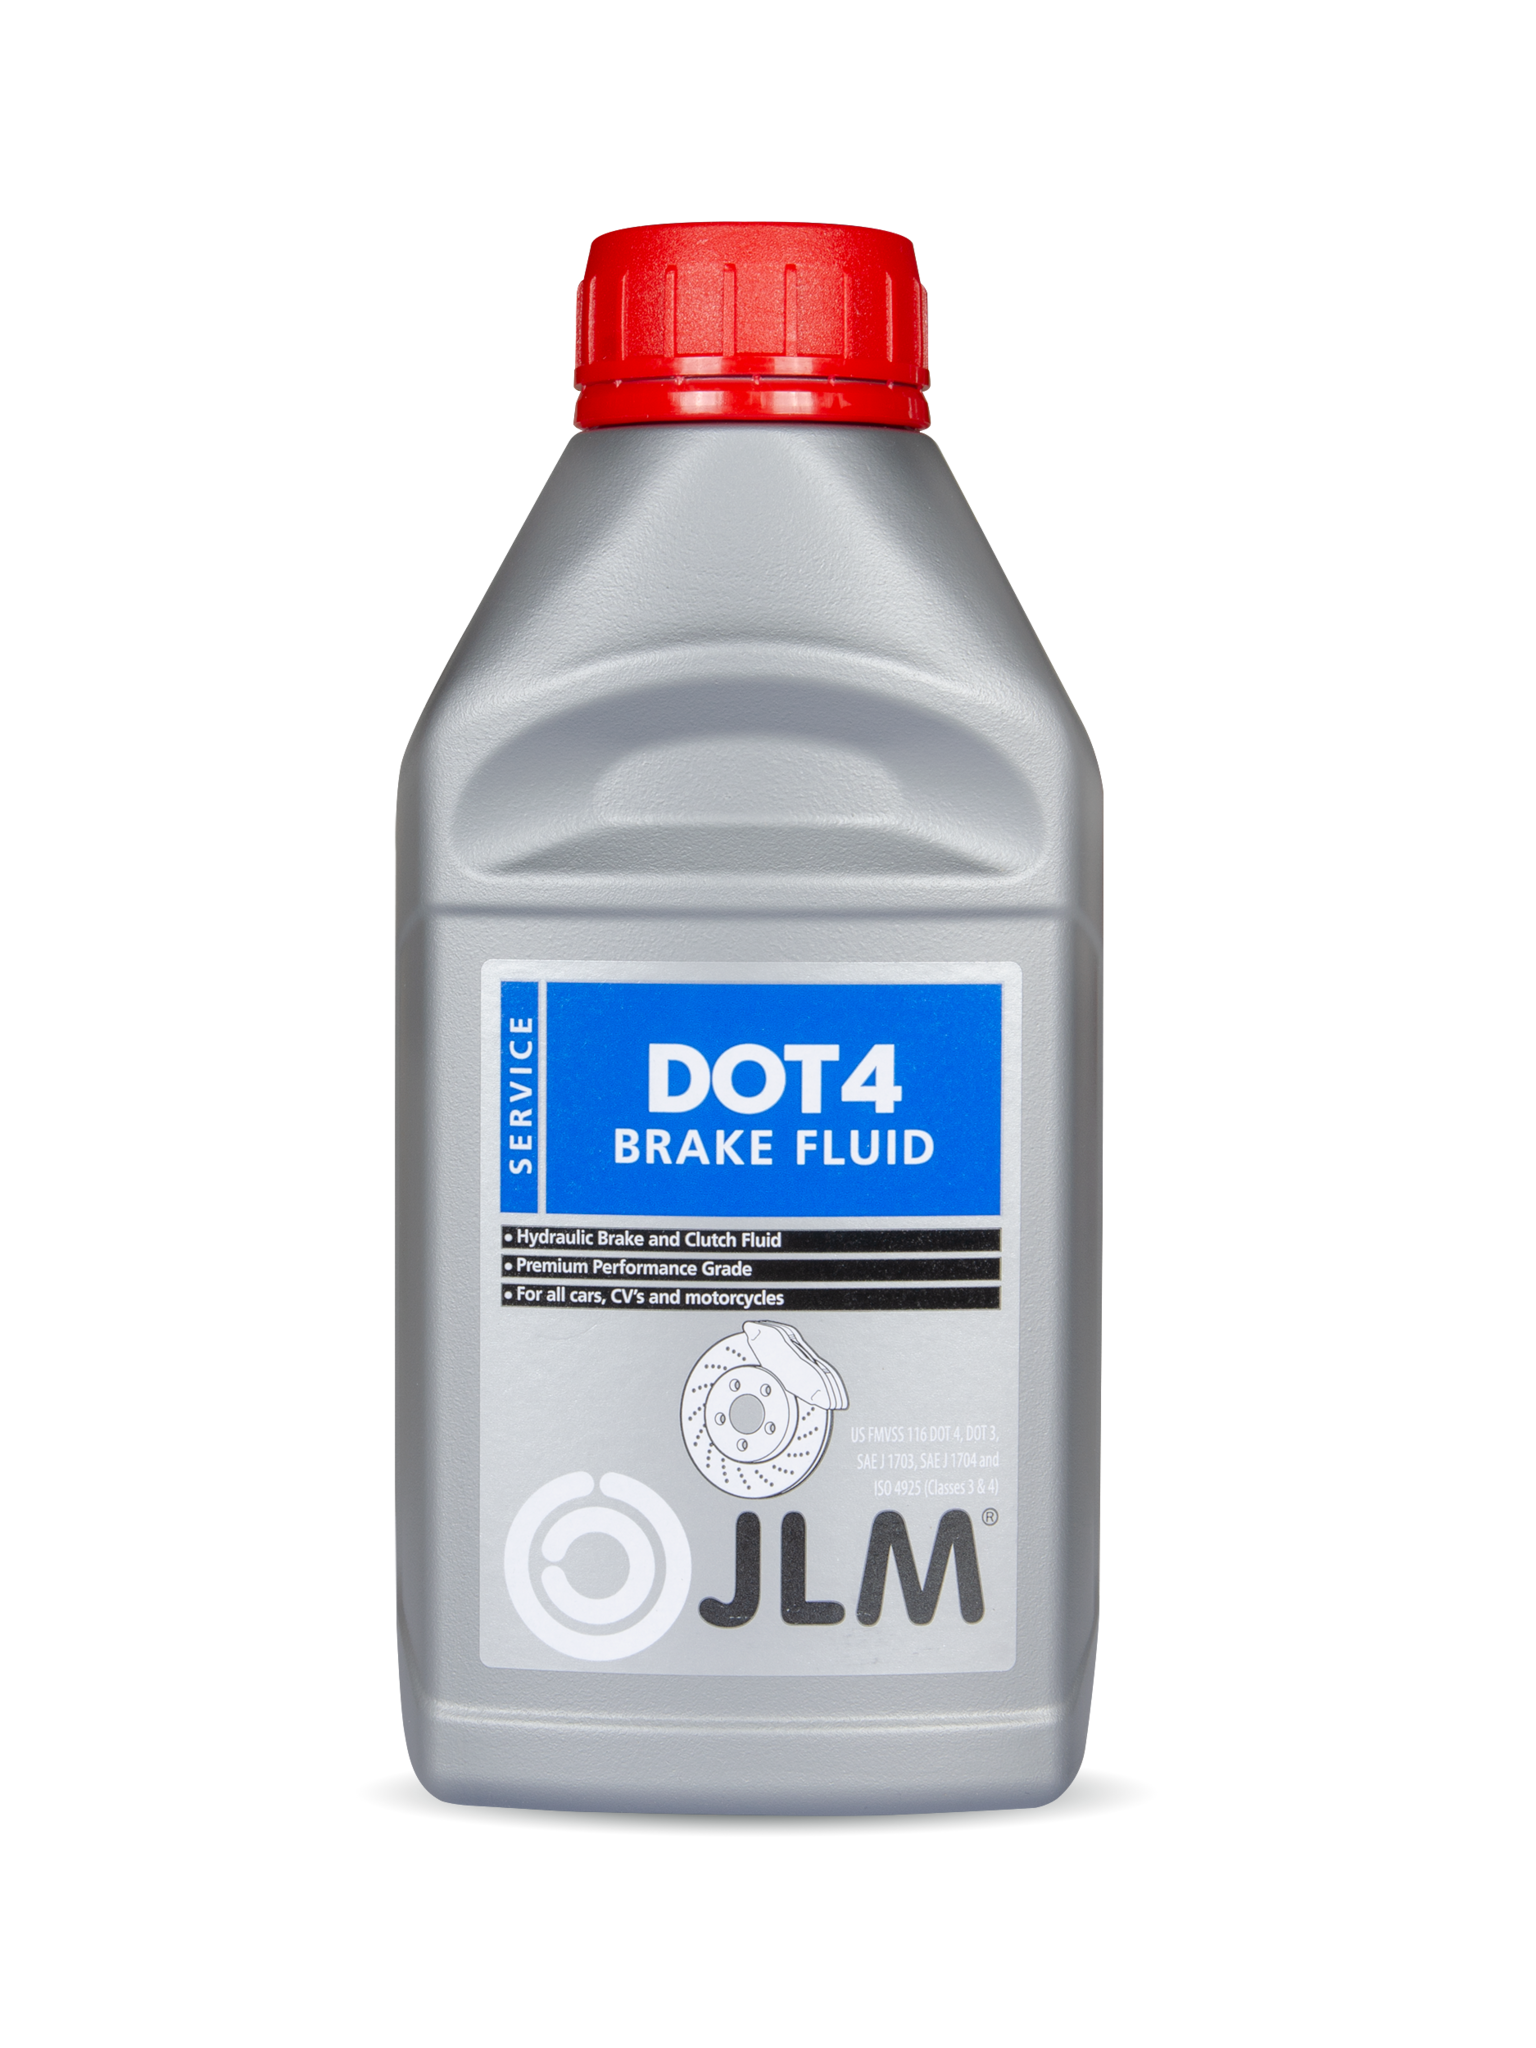 JLM Lubricants Brakefluid Dot 4 500ml